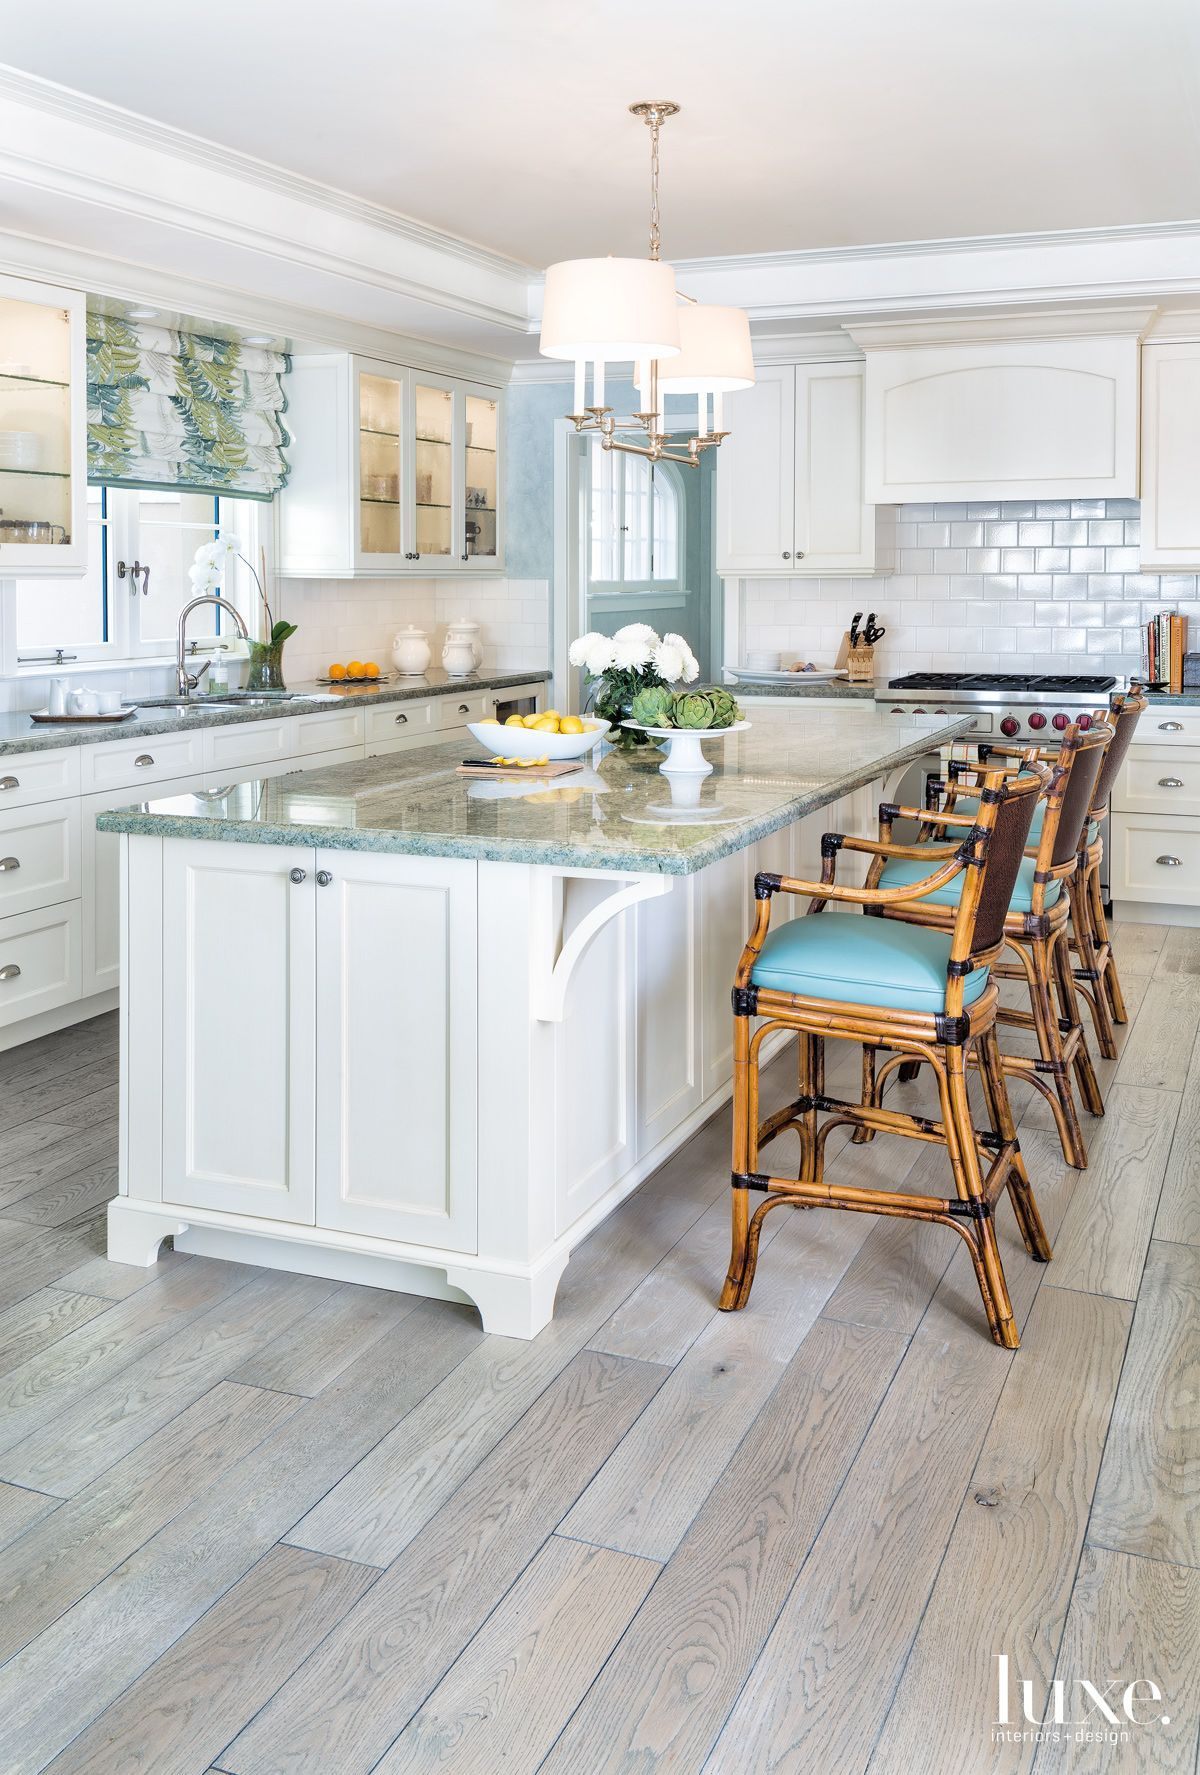 Coastal kitchen Allison Paladino Interior Design